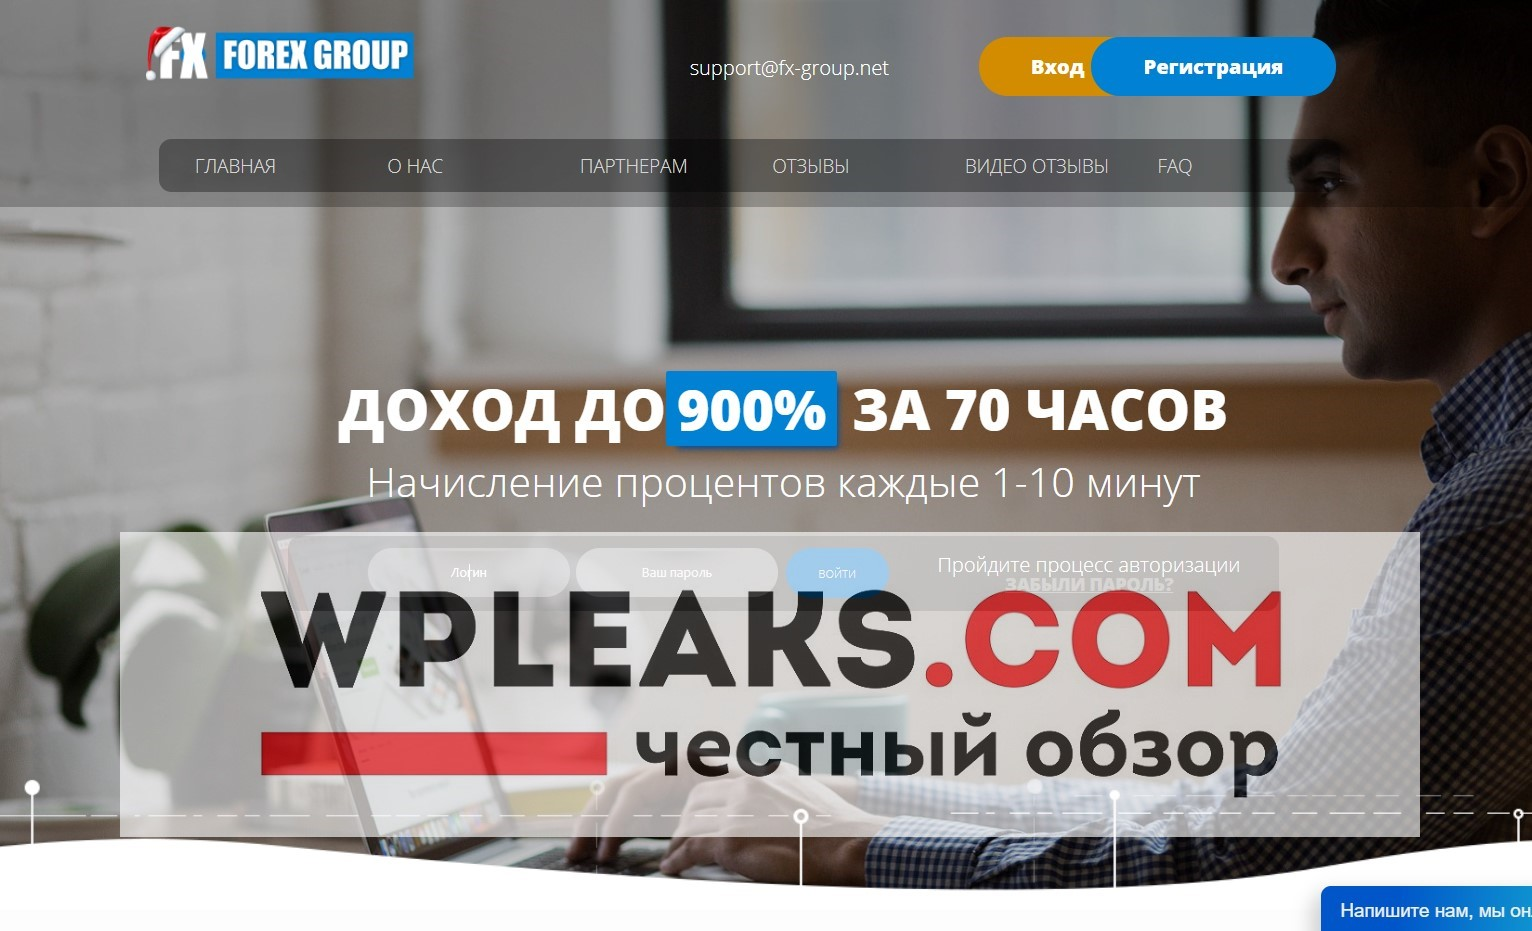 fx-group.net отзывы